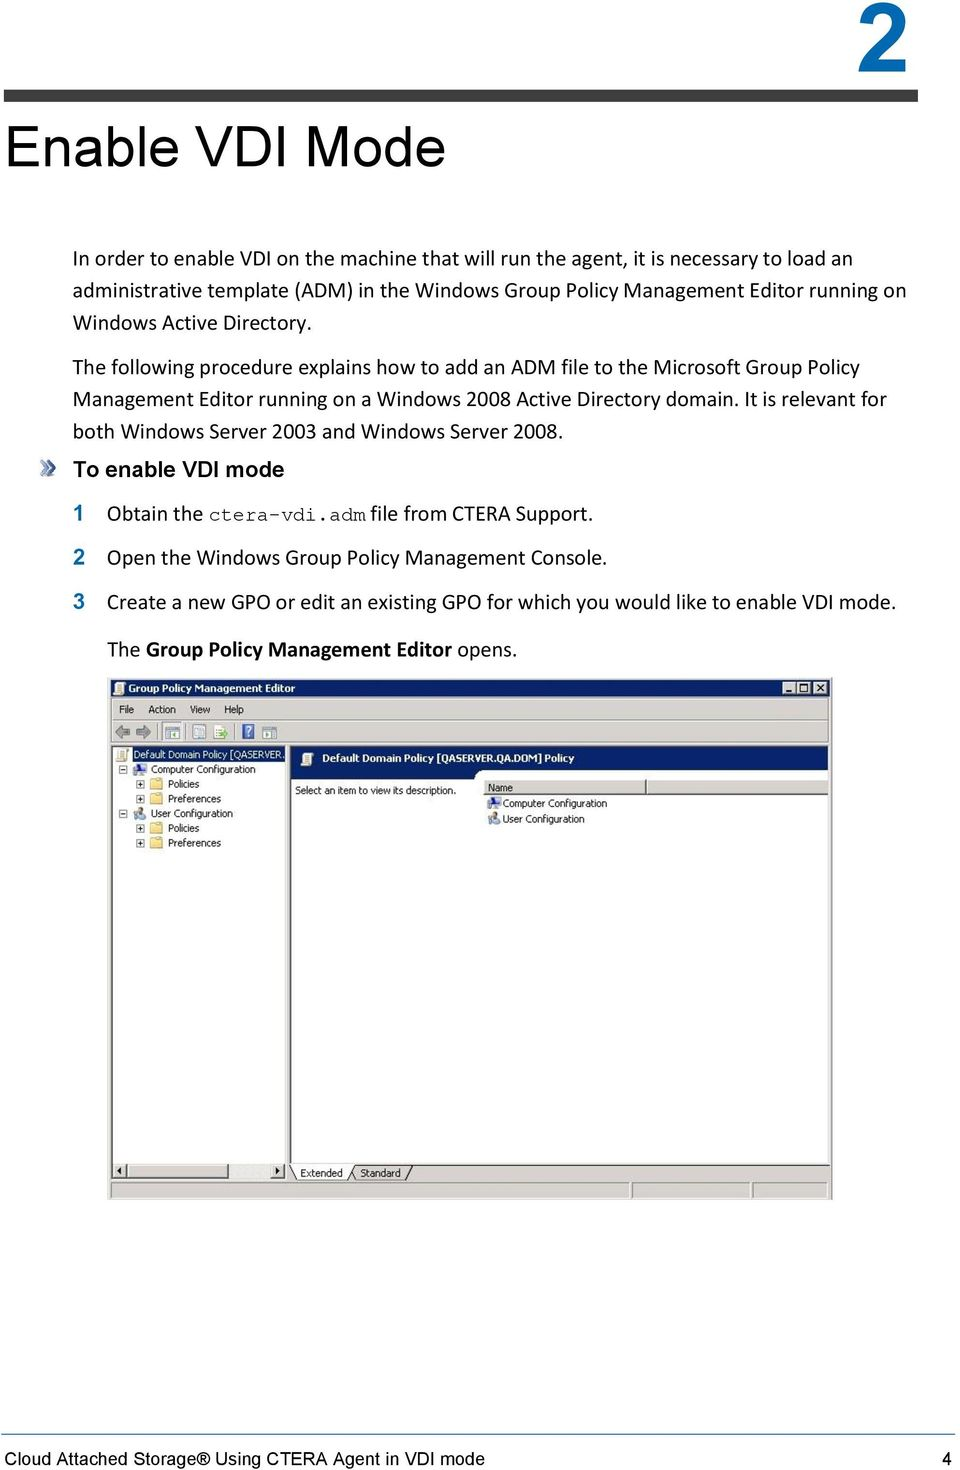 The following procedure explains how to add an ADM file to the Microsoft Group Policy Management Editor running on a Windows 2008 Active Directory domain.